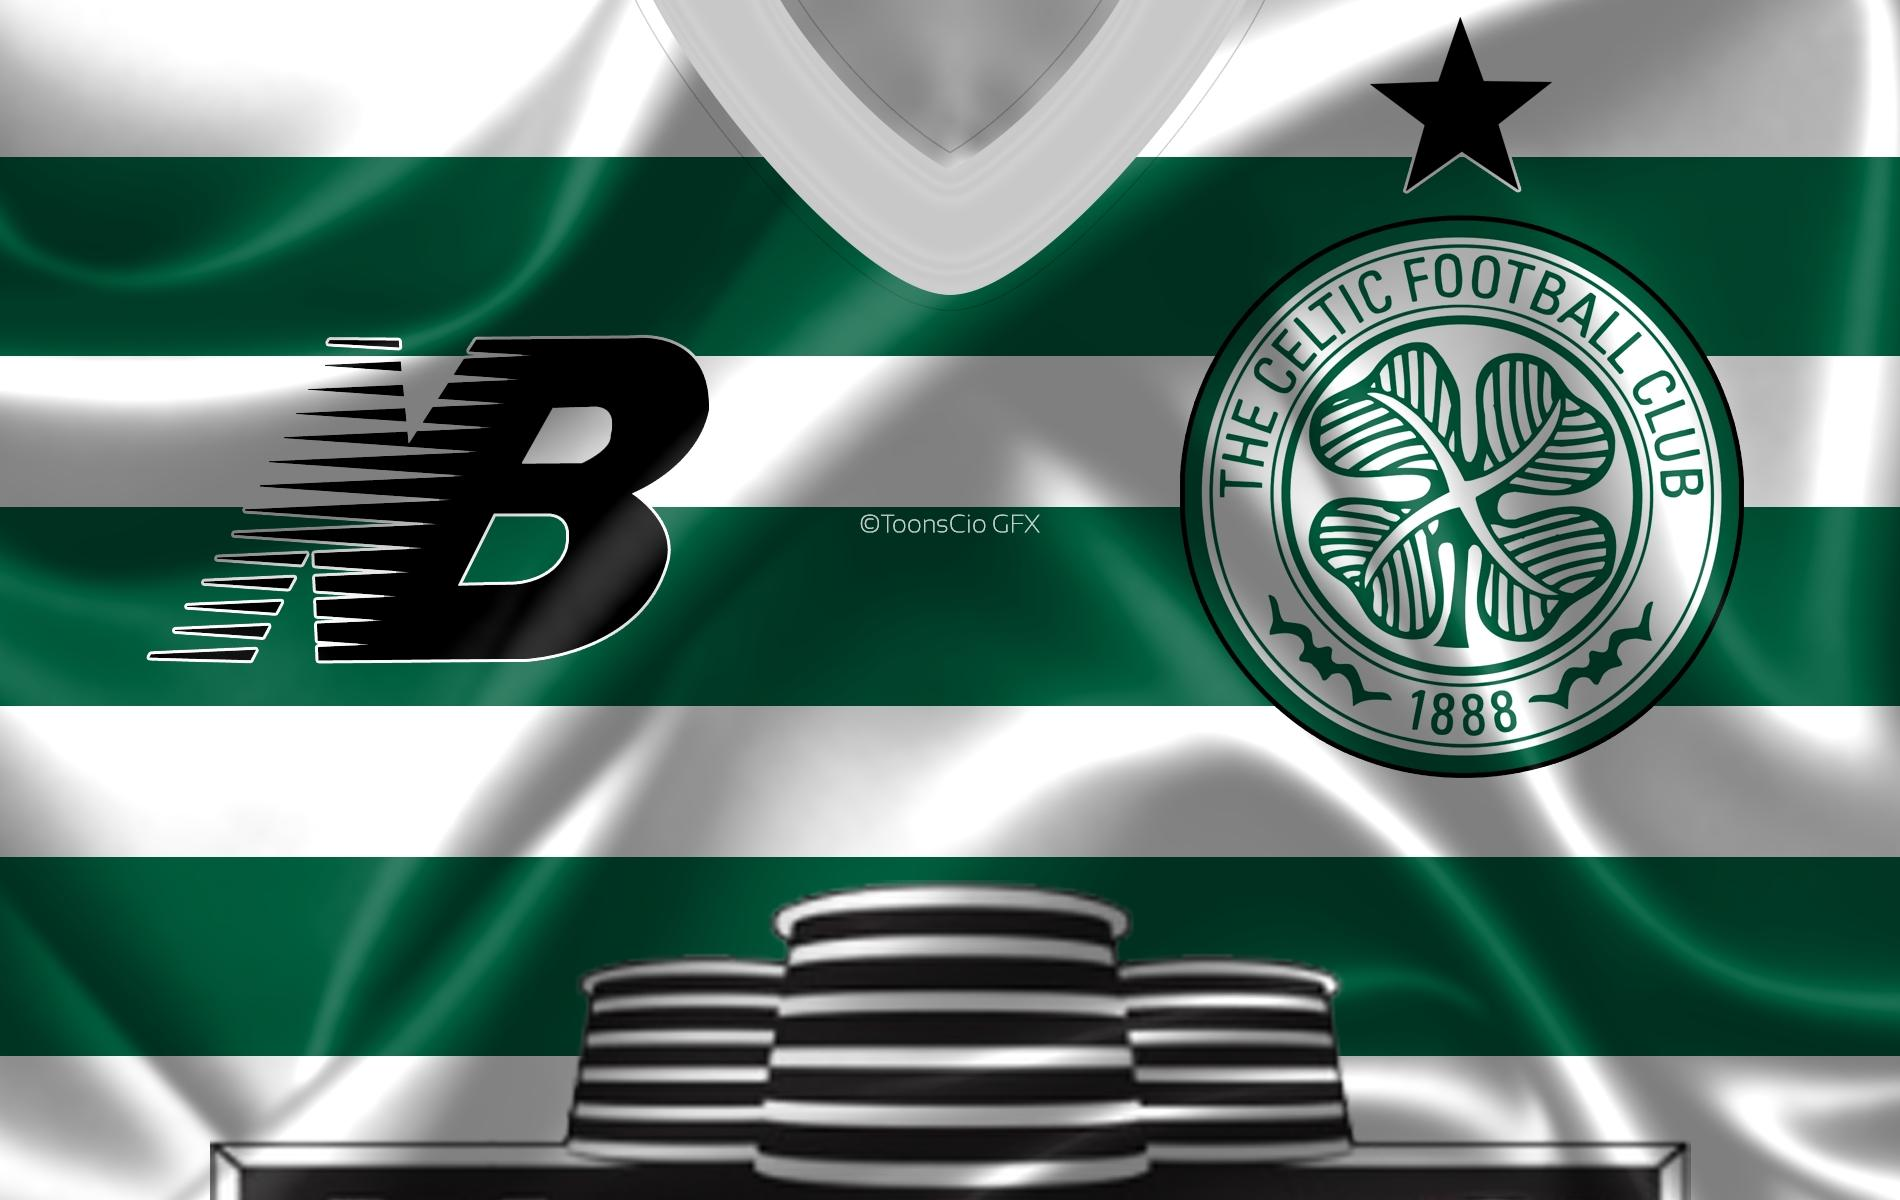 Beautiful Celtic Fc iPhone Wallpapers